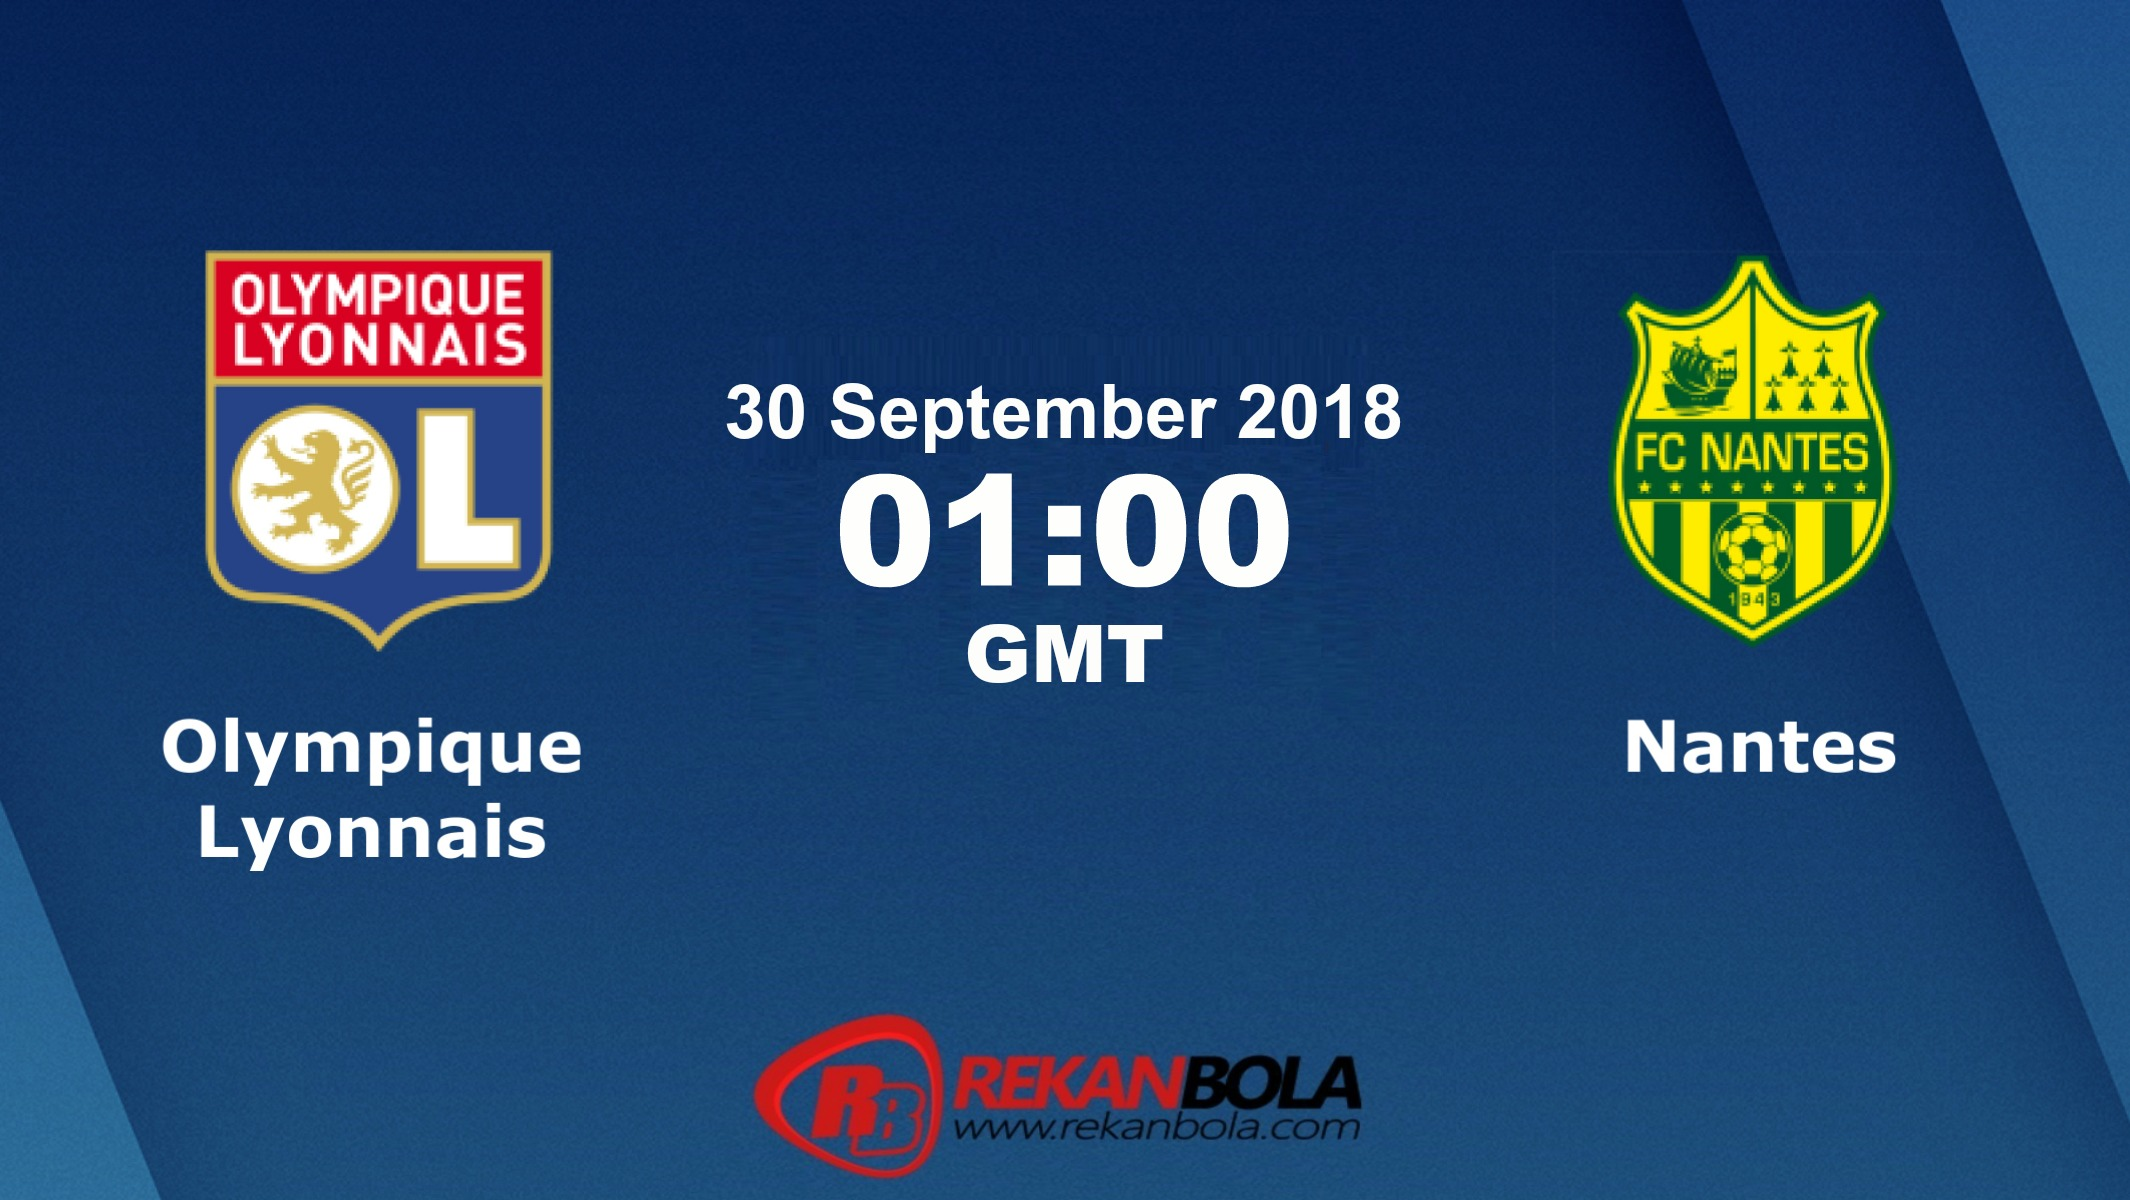 Nonton Siaran Live Streaming Lyon Vs Nantes 30 September 2018